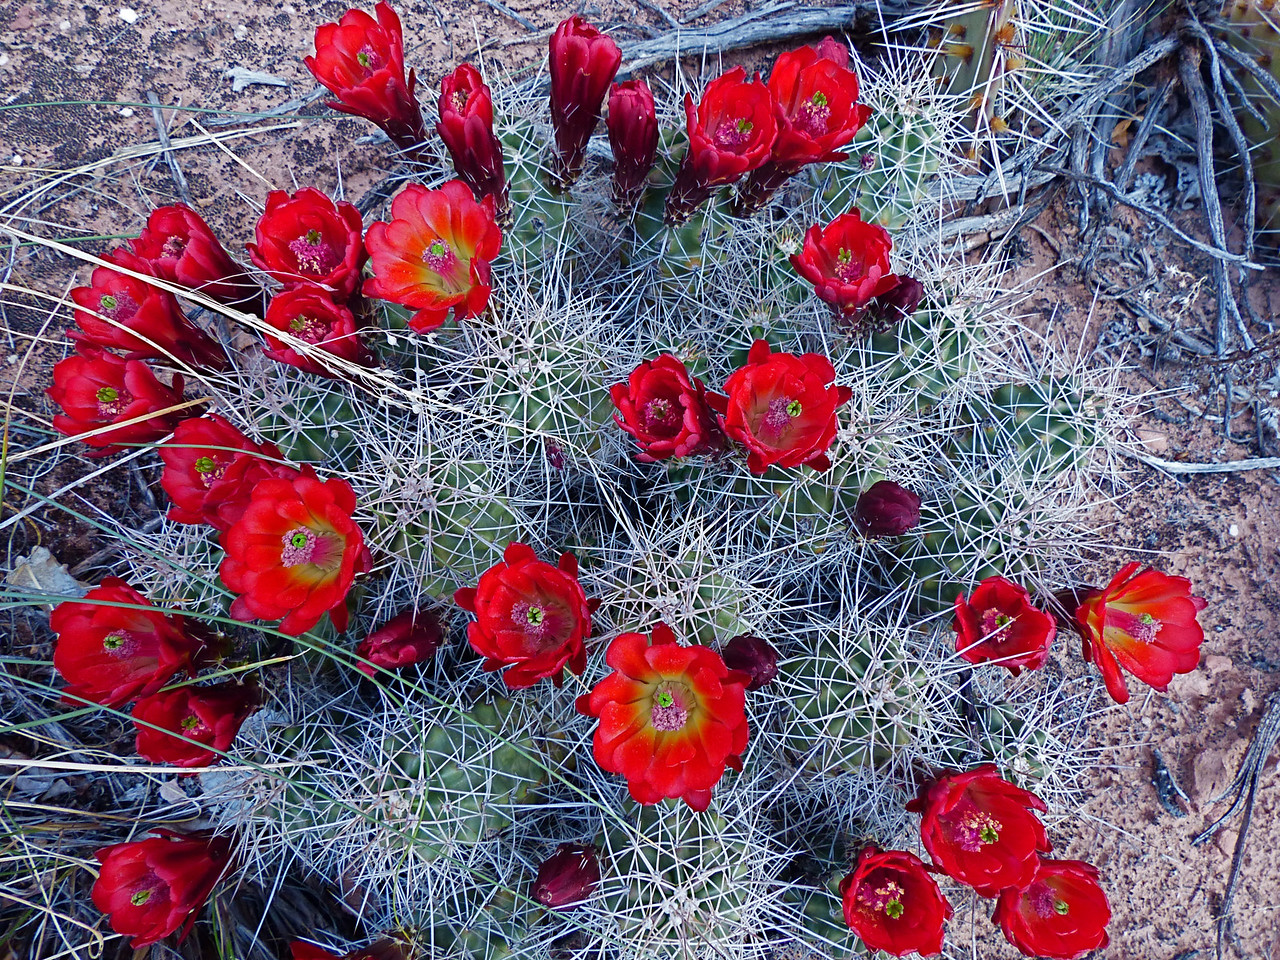 Lots of flowering cactus in Grand Gulch.